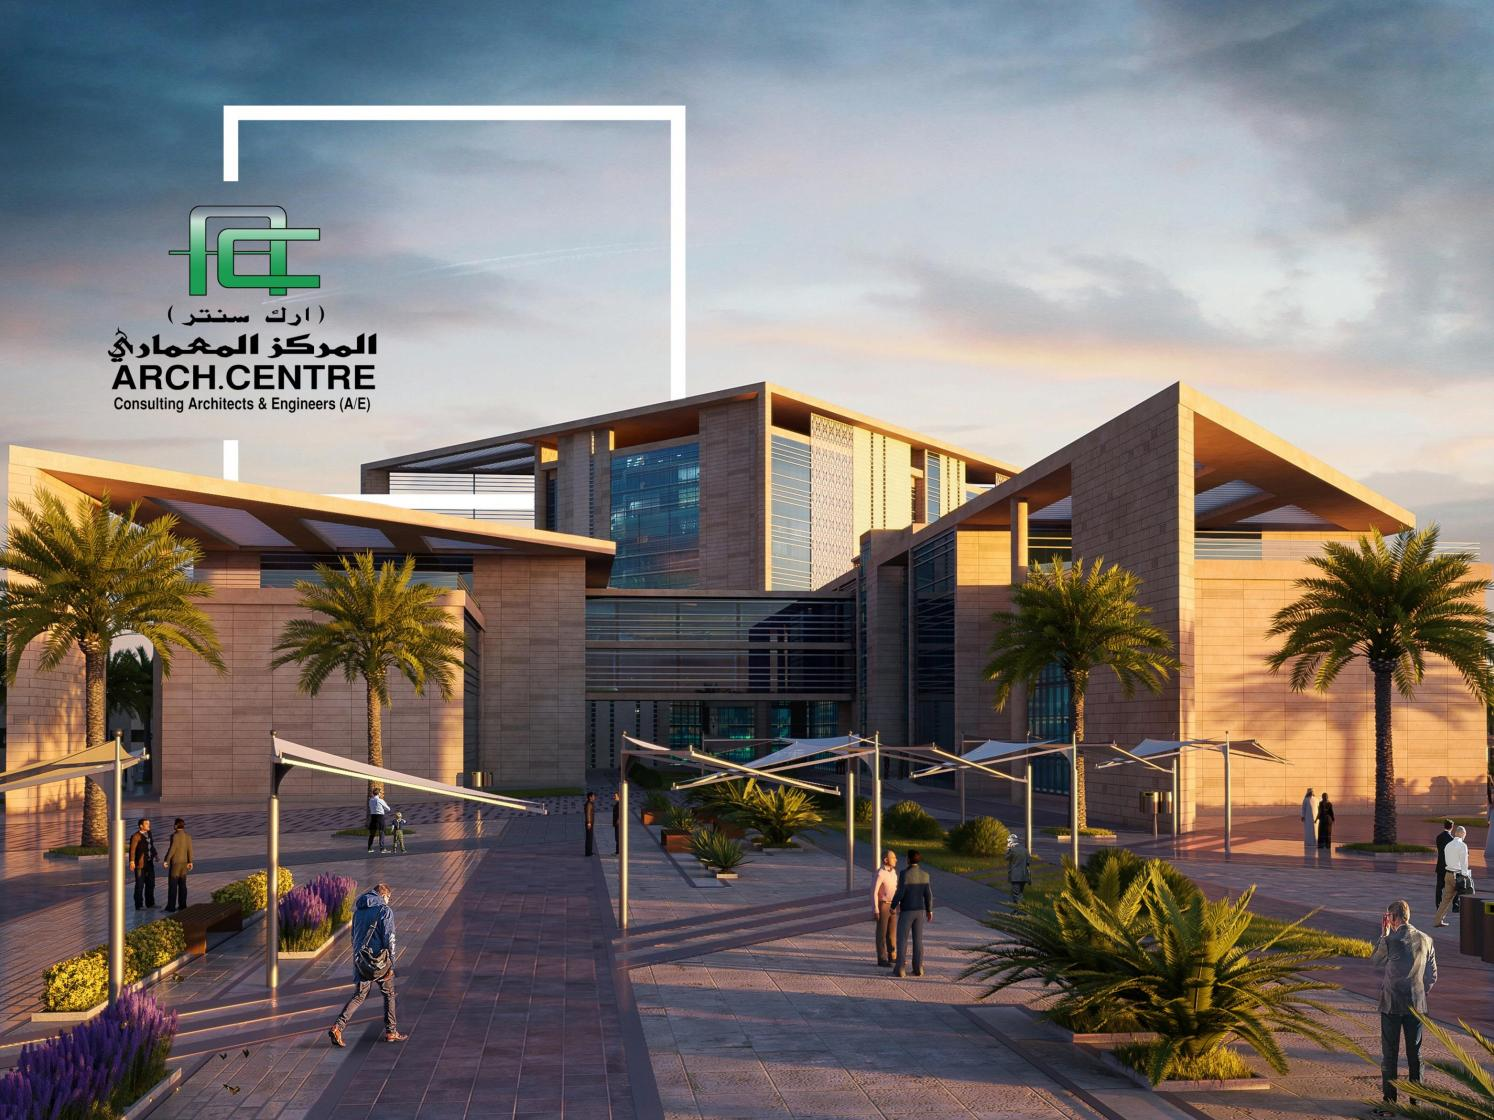 Arch Centre Profile 2019 By Arch Centre Consulting Architects Engineers Issuu